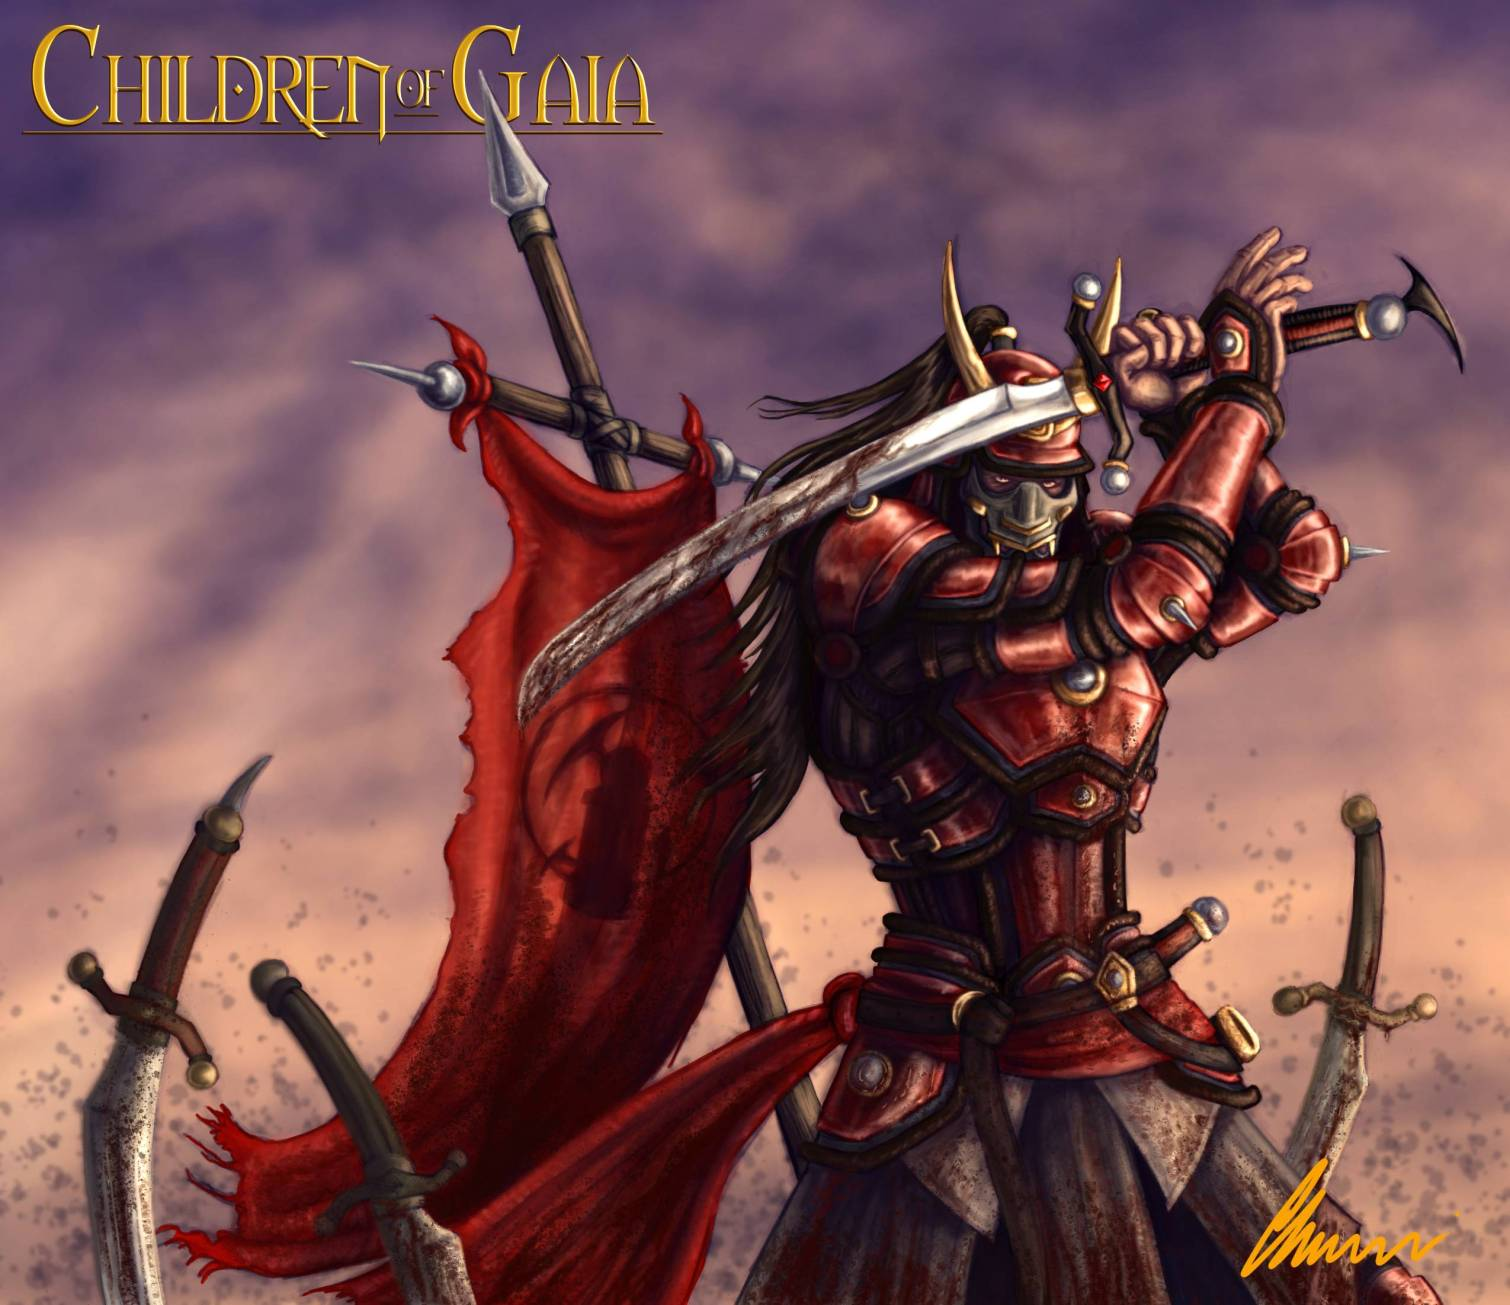 Action shot of a Vargas Imperial Soldier in full armor from the Children of Gaia series illustrated by Chris Covelli